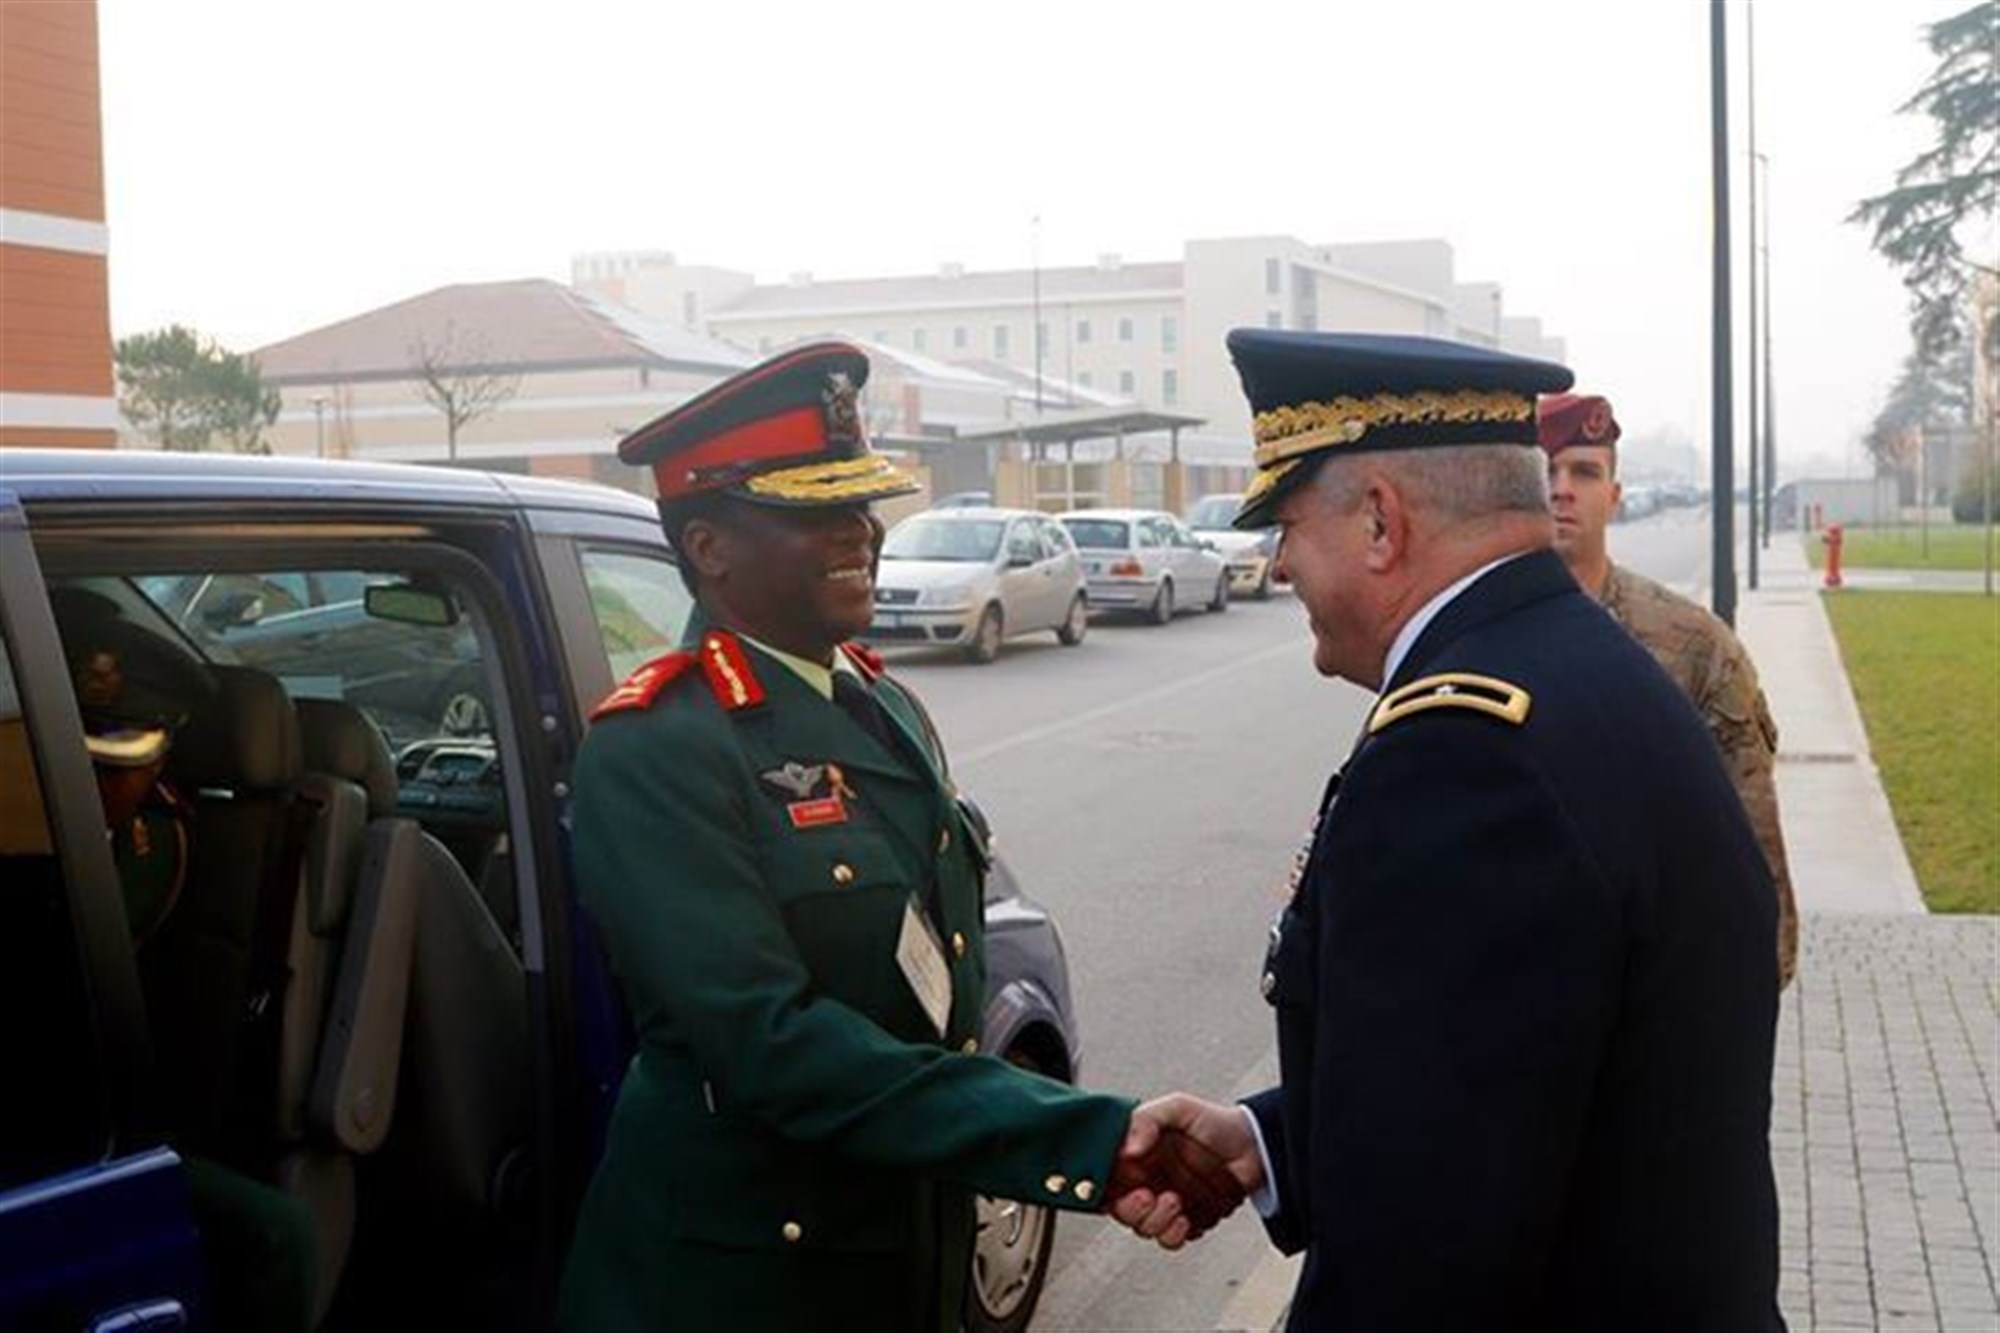 U.S. Army Africa Deputy Commanding General, Brig. Gen. Kenneth H. Moore, Jr. greets Botswana Commander, Maj. Gen. Molefi Seikano, during a command sponsored visit to Vicenza, Italy, Nov.30 to Dec. 3, 2015. The visit offer Seikano an opportunity to observe USARAF facilities and capabilities, as well as explore opportunities for future training and partnership. (U.S. Army Africa photo by Spc. Craig Philbrick)